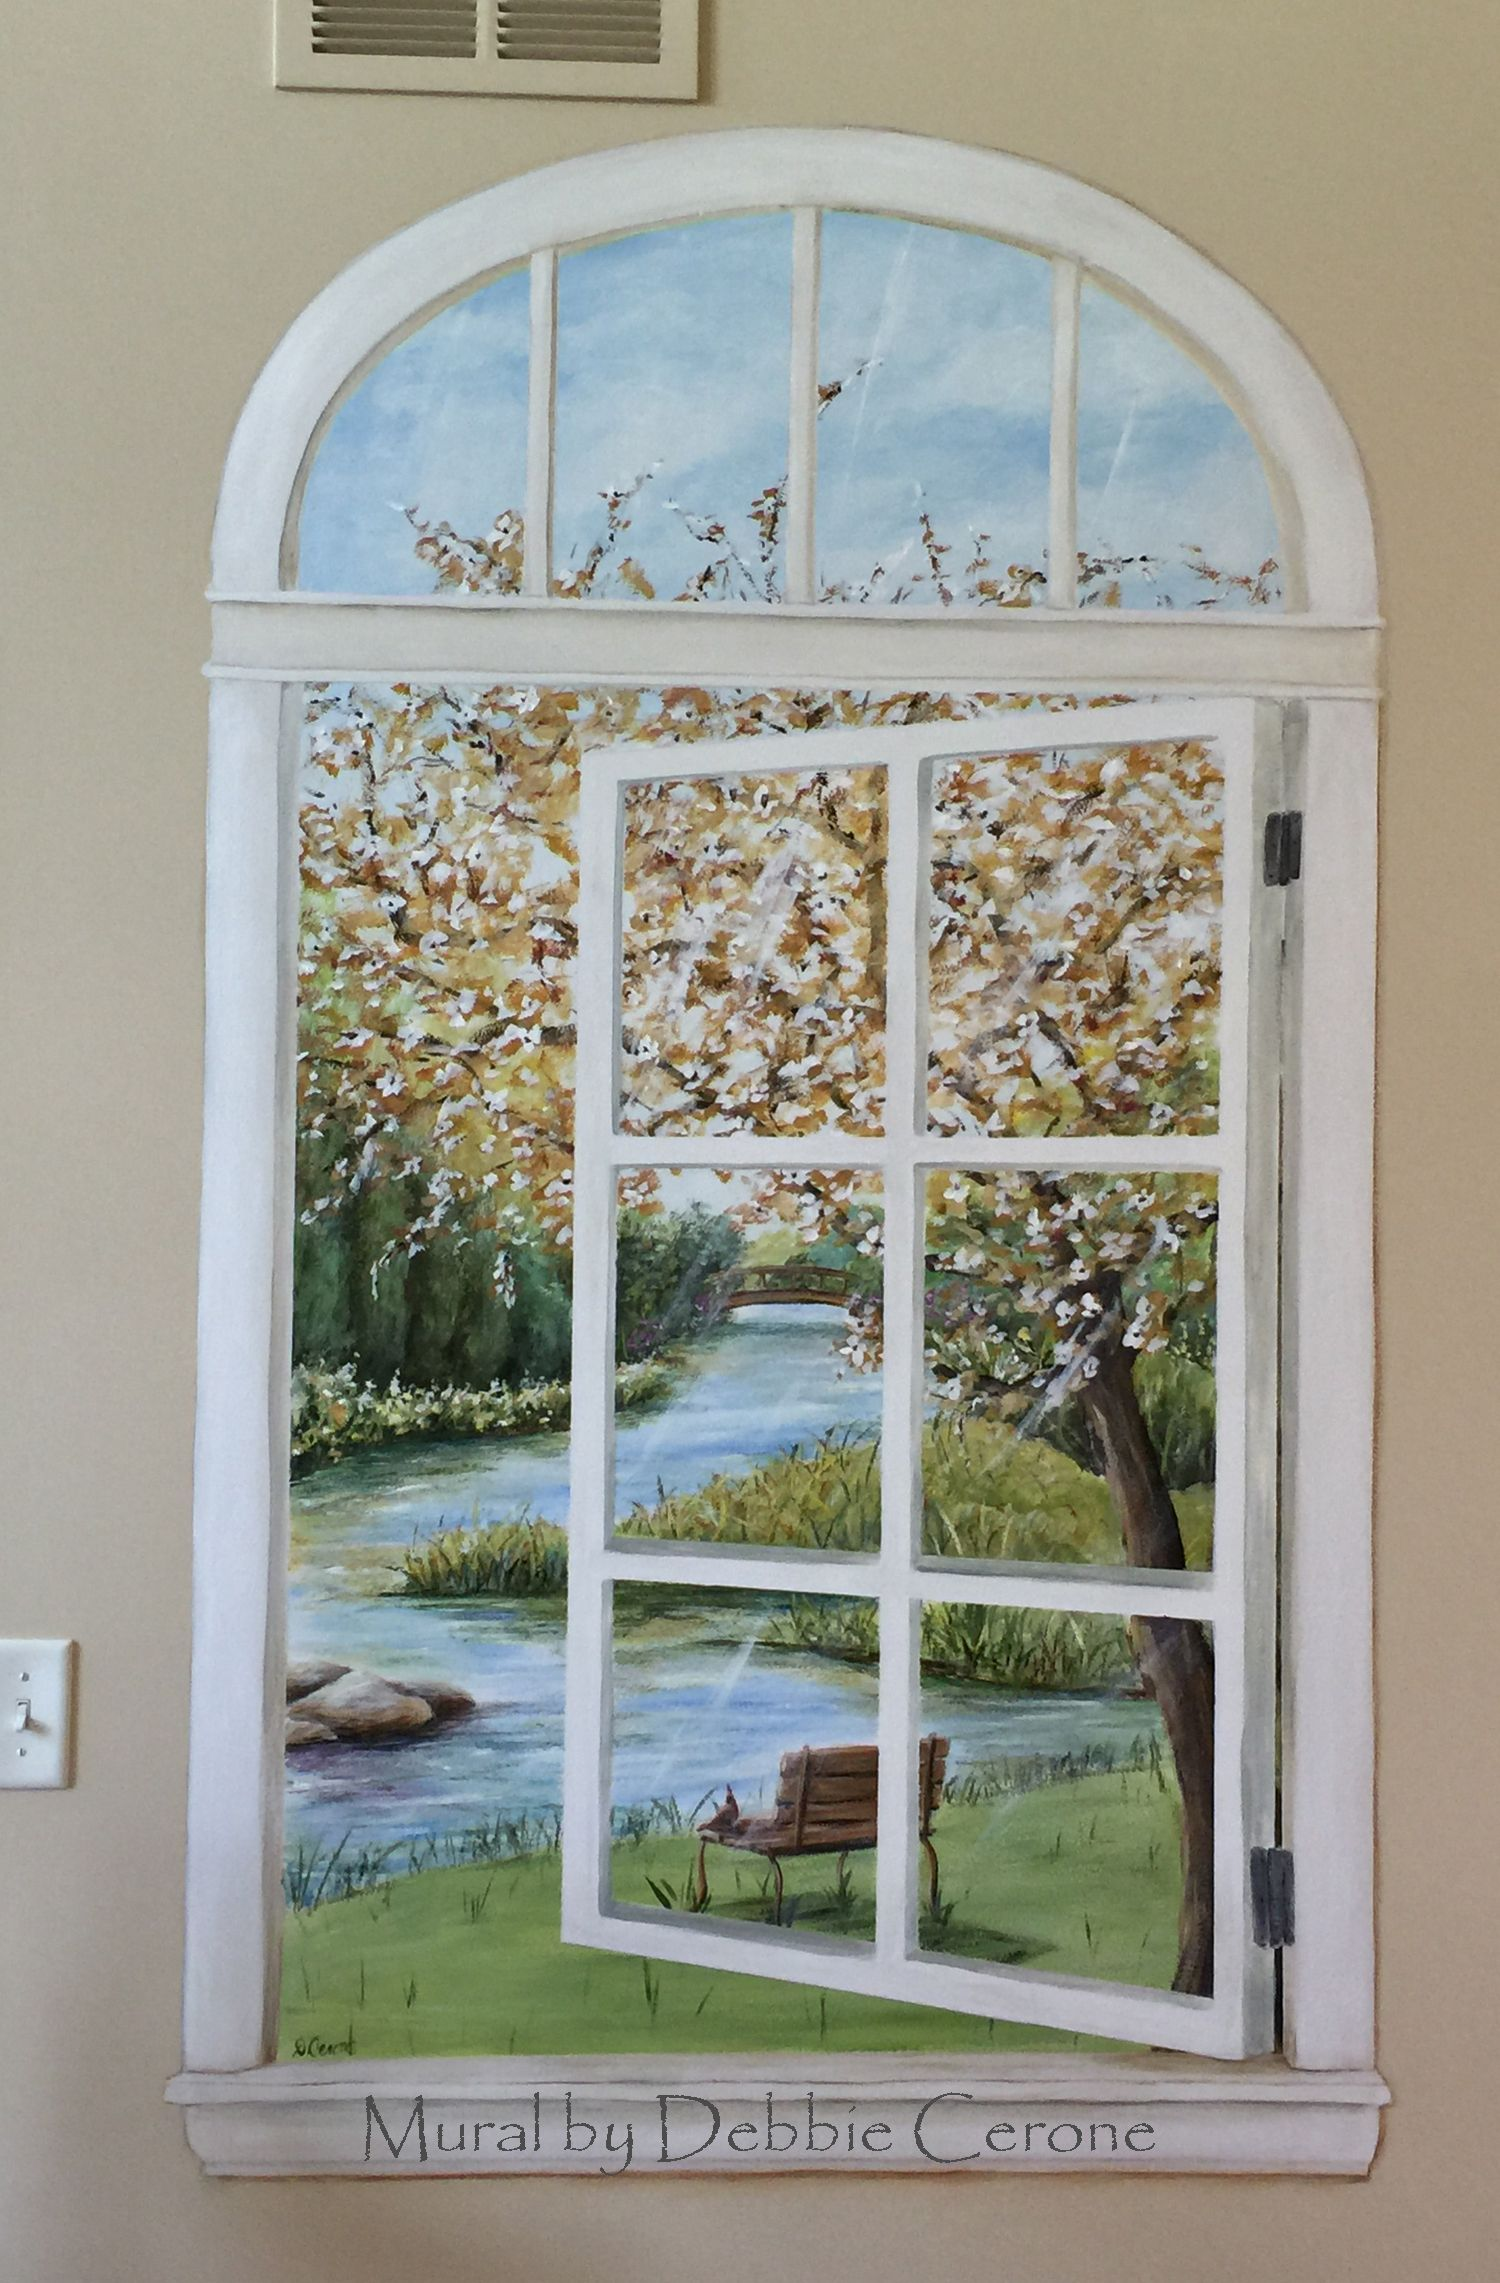 Trompe Lu0027oeil Window Mural   With River Scene, Painted In Private Residence  In Part 98